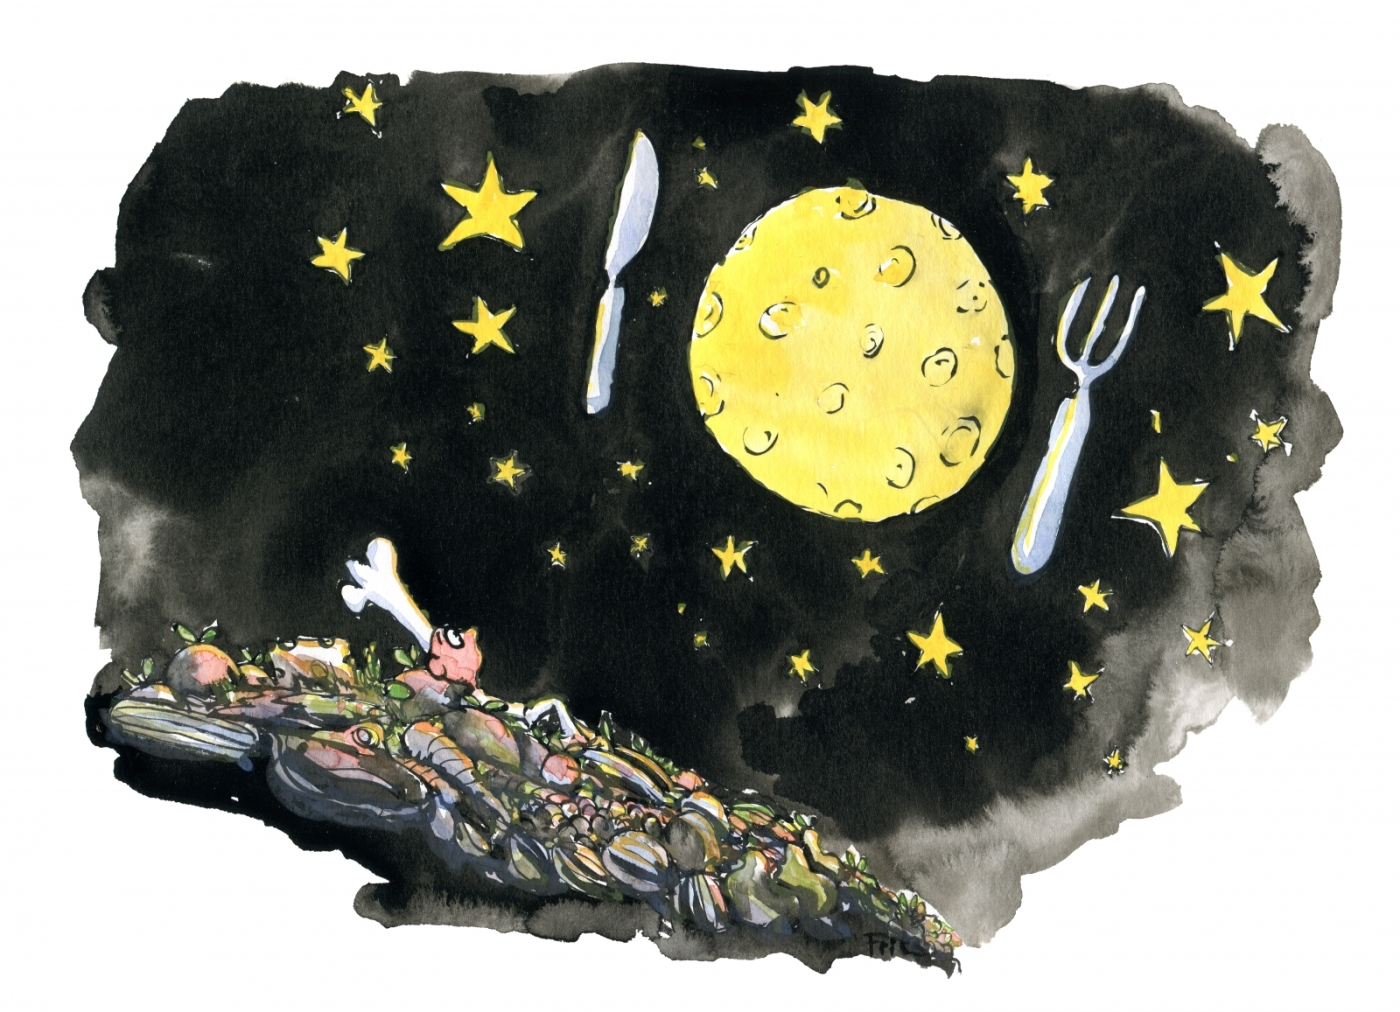 Drawing of a chief cook, looking up at the moon and stars, as a plate